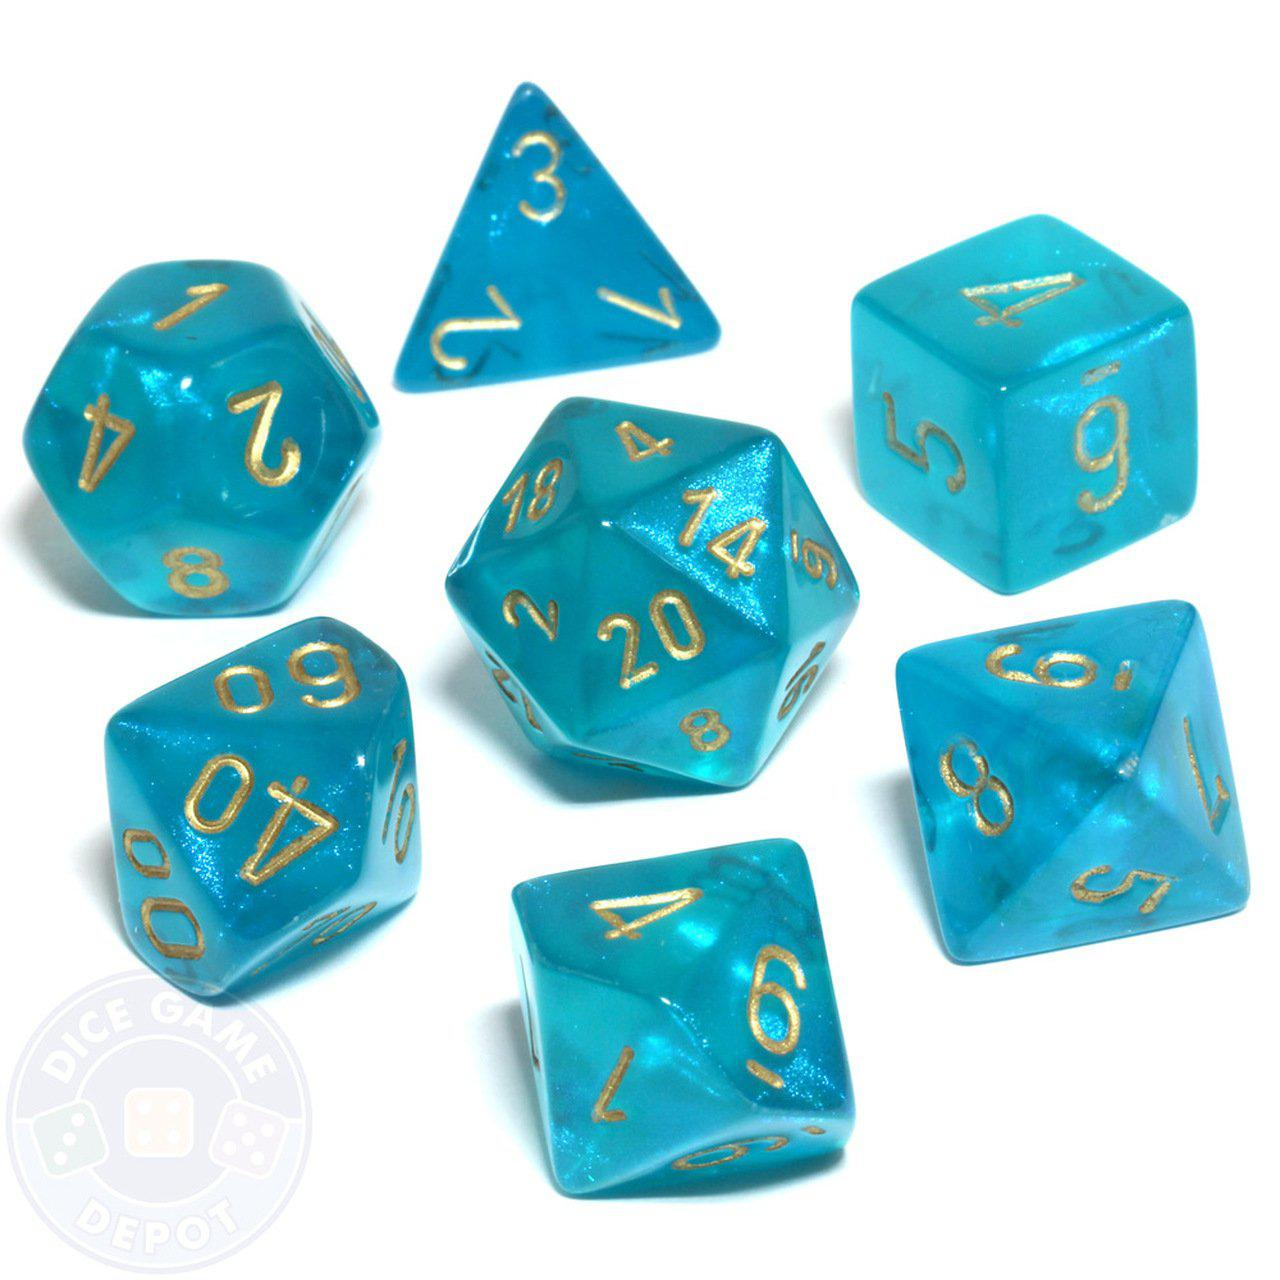 Borealis Polyhedral Dice Set - Teal & Gold-Chessex-Game Kings